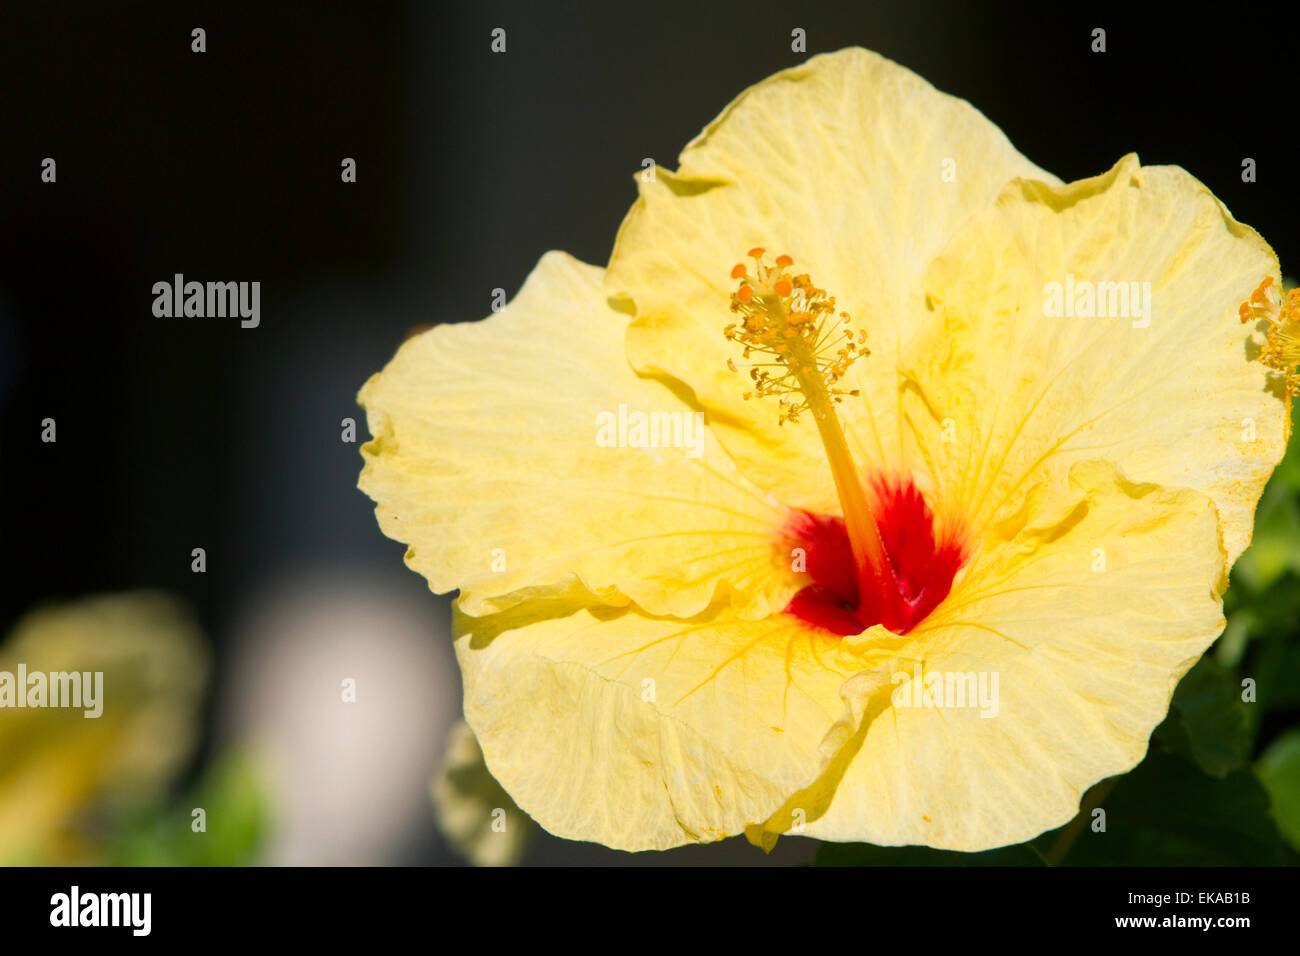 Yellow hibiscus flower in Hawaii, USA. - Stock Image